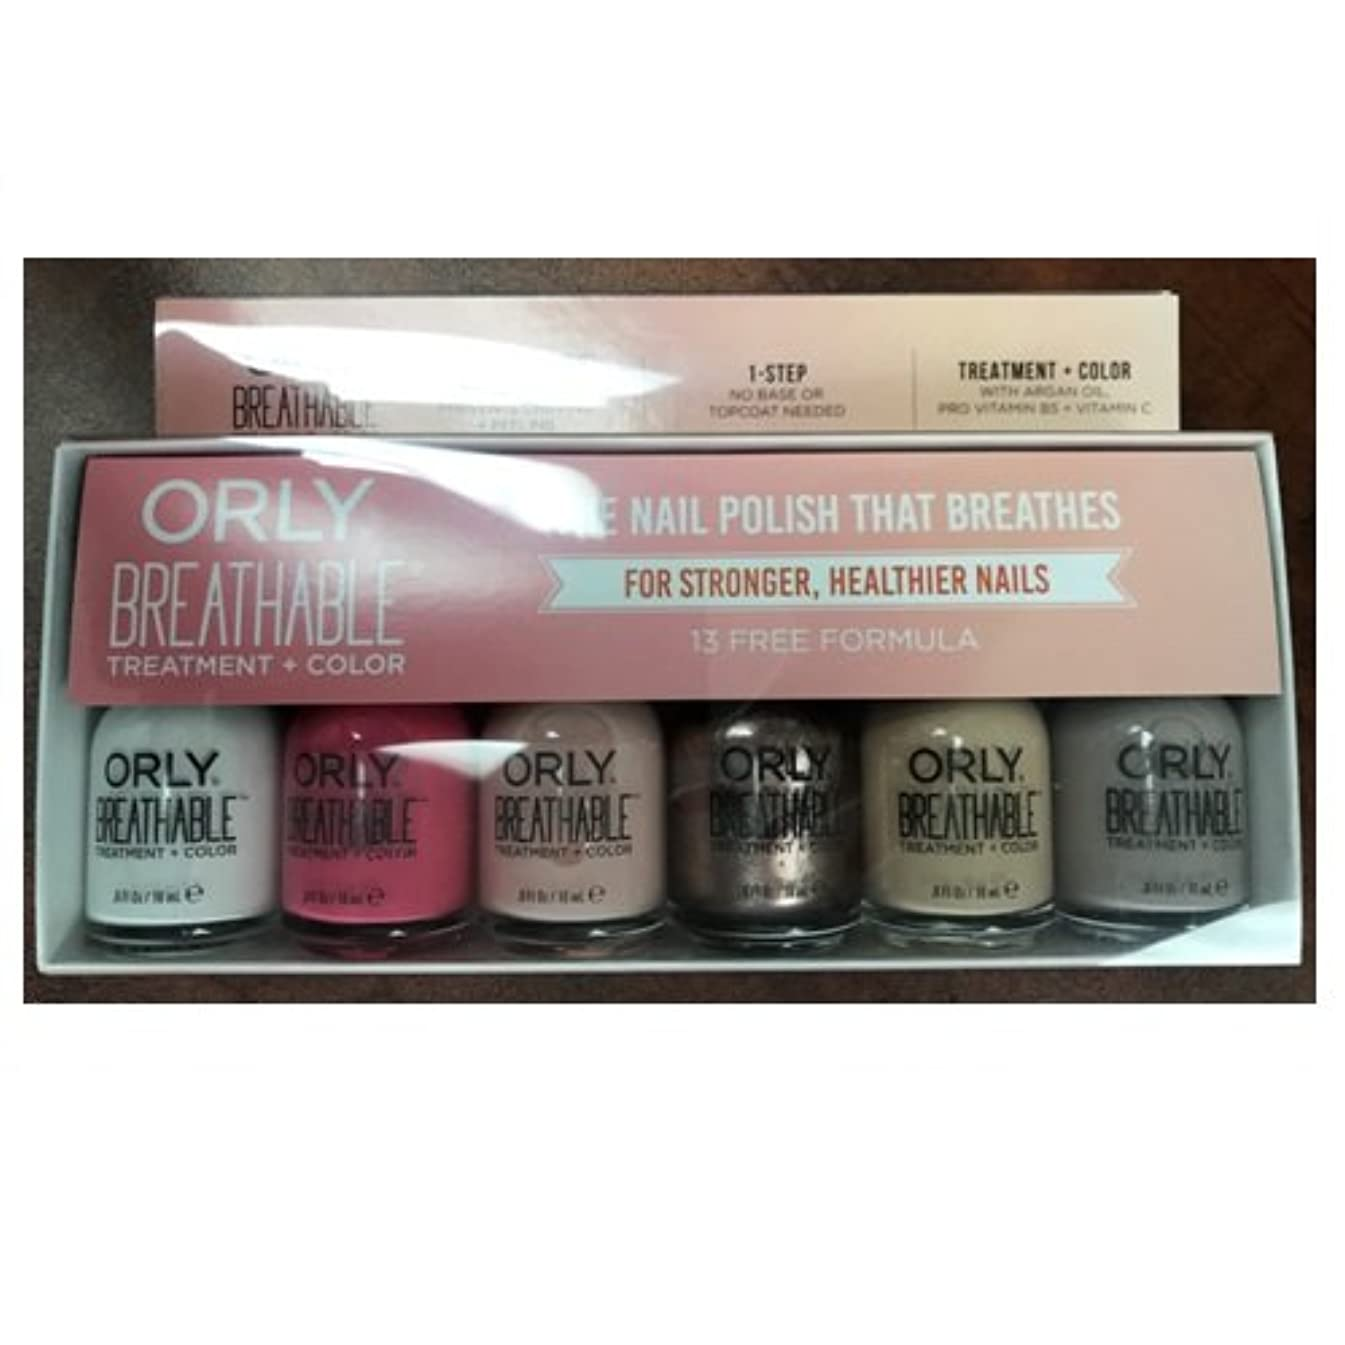 Orly Breathable Nail Lacquer - Treatment + Color - 6 Piece Kit #2 - 18ml / 0.6oz Each